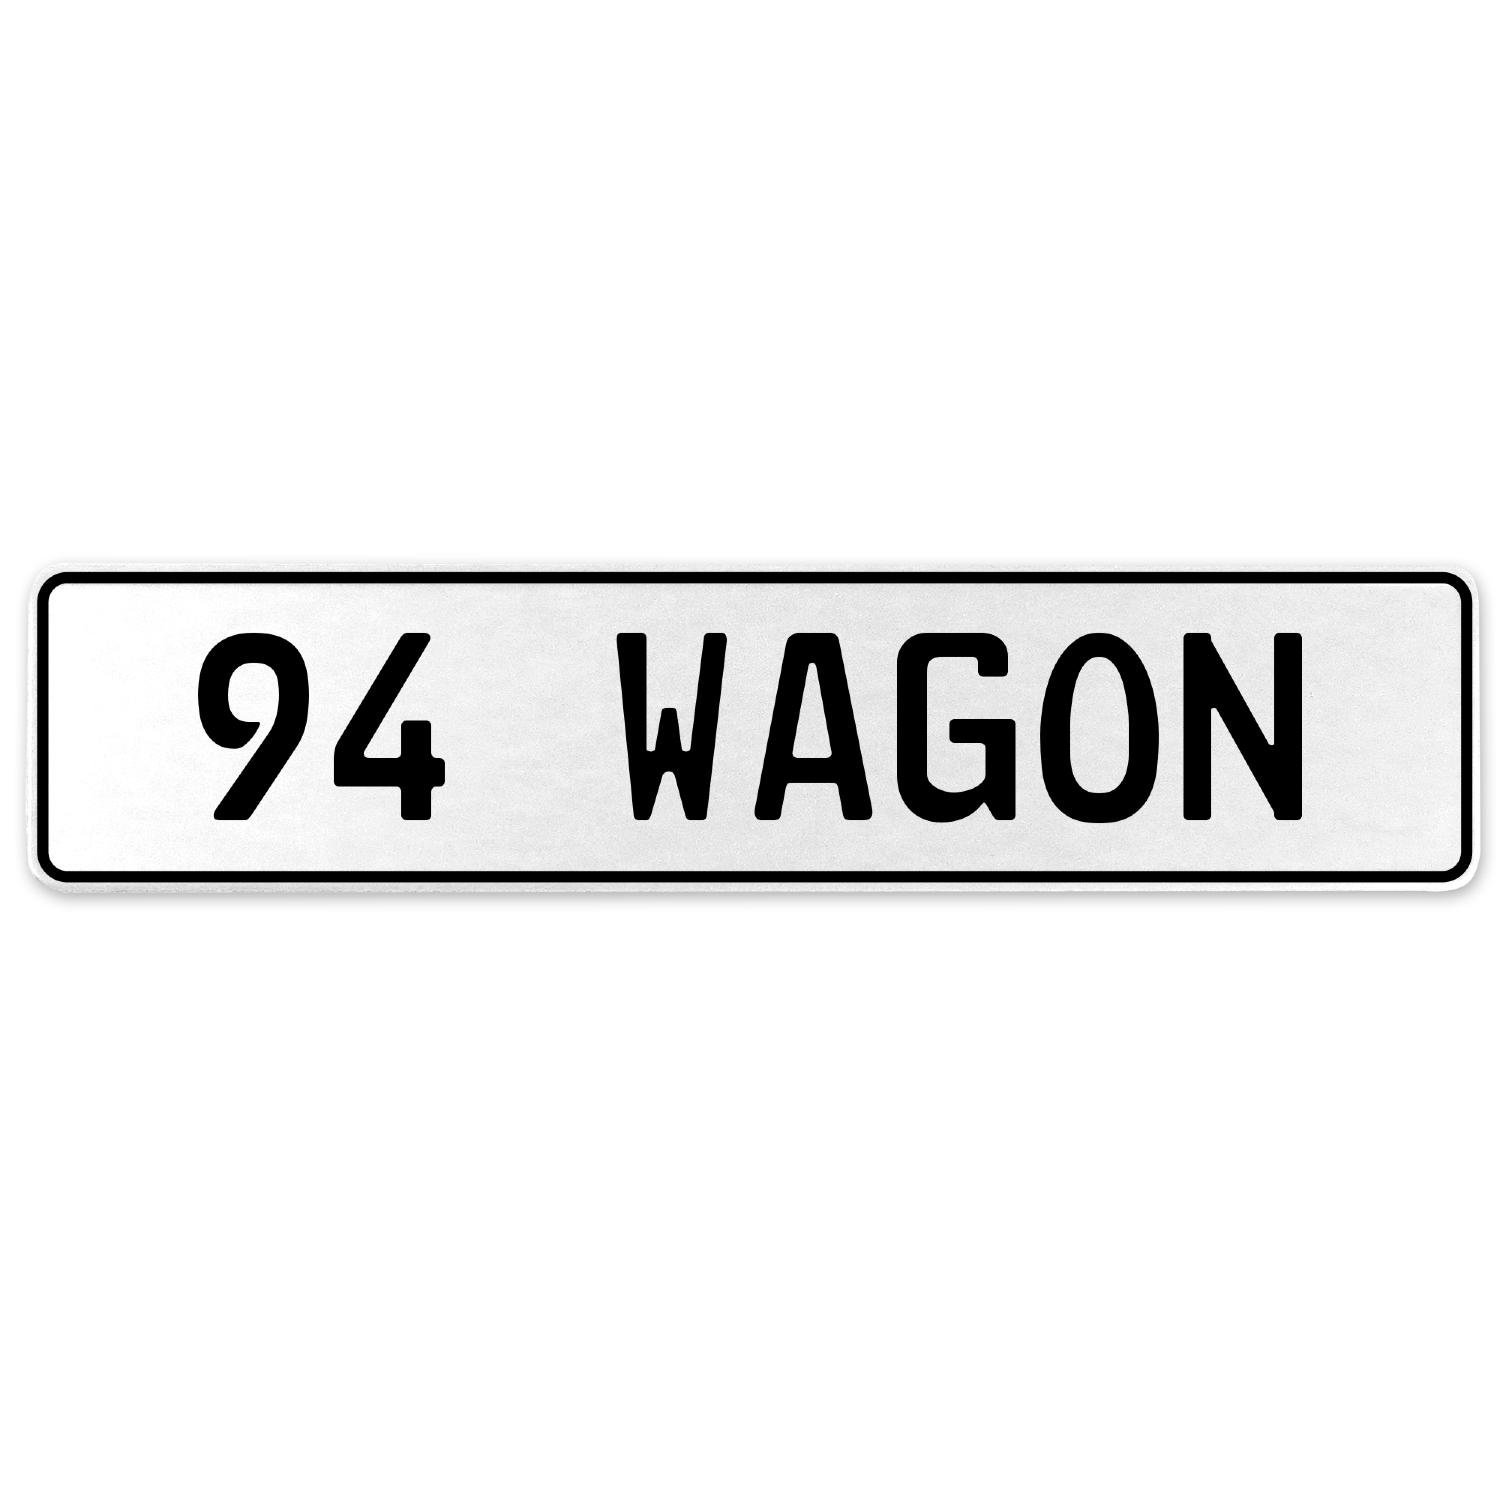 Vintage Parts 558255 94 Wagon White Stamped Aluminum European License Plate